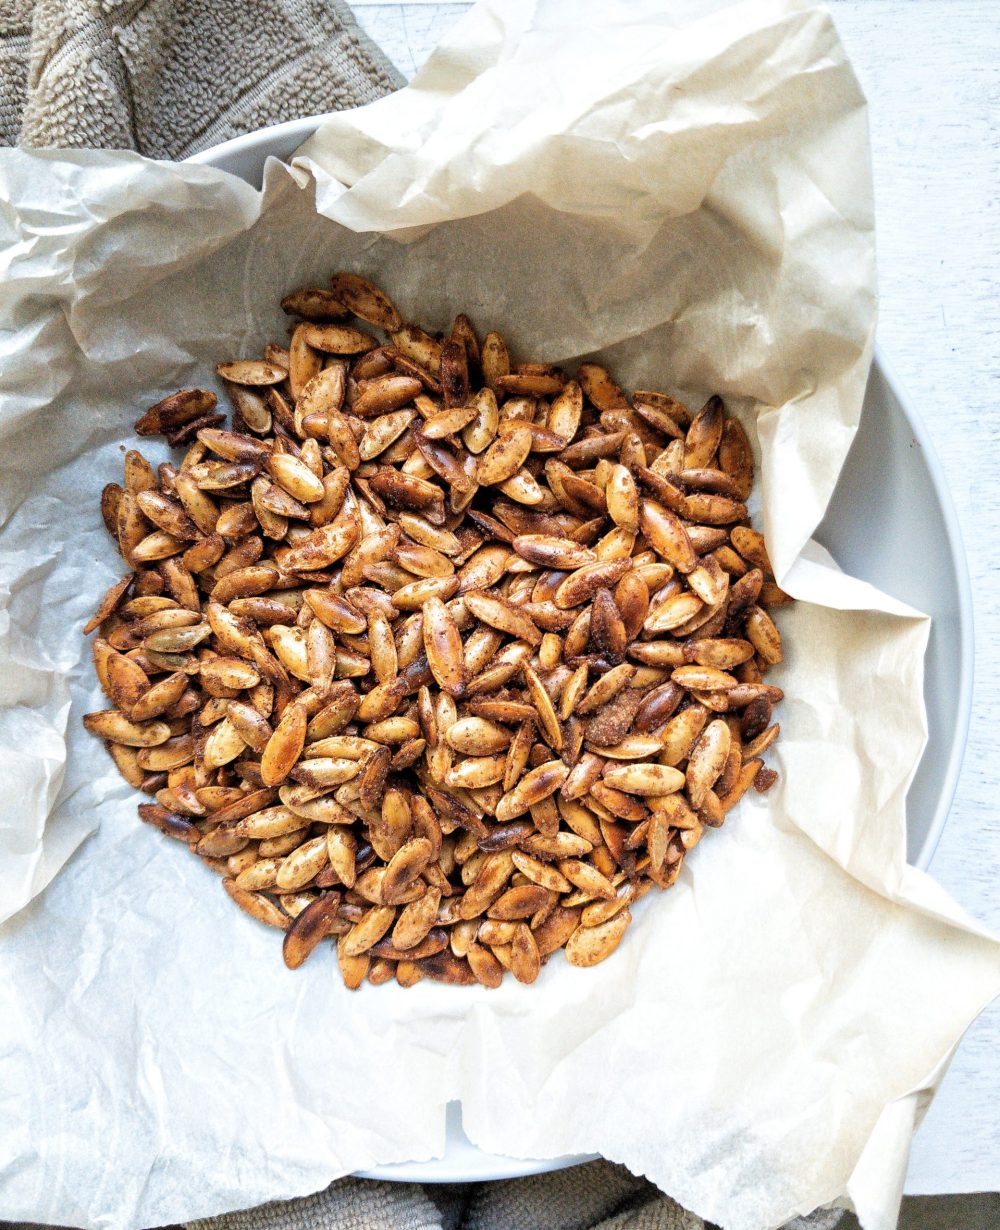 Toasted cinnamon brown sugar pumpkin seeds in a bowl lined with parchment paper